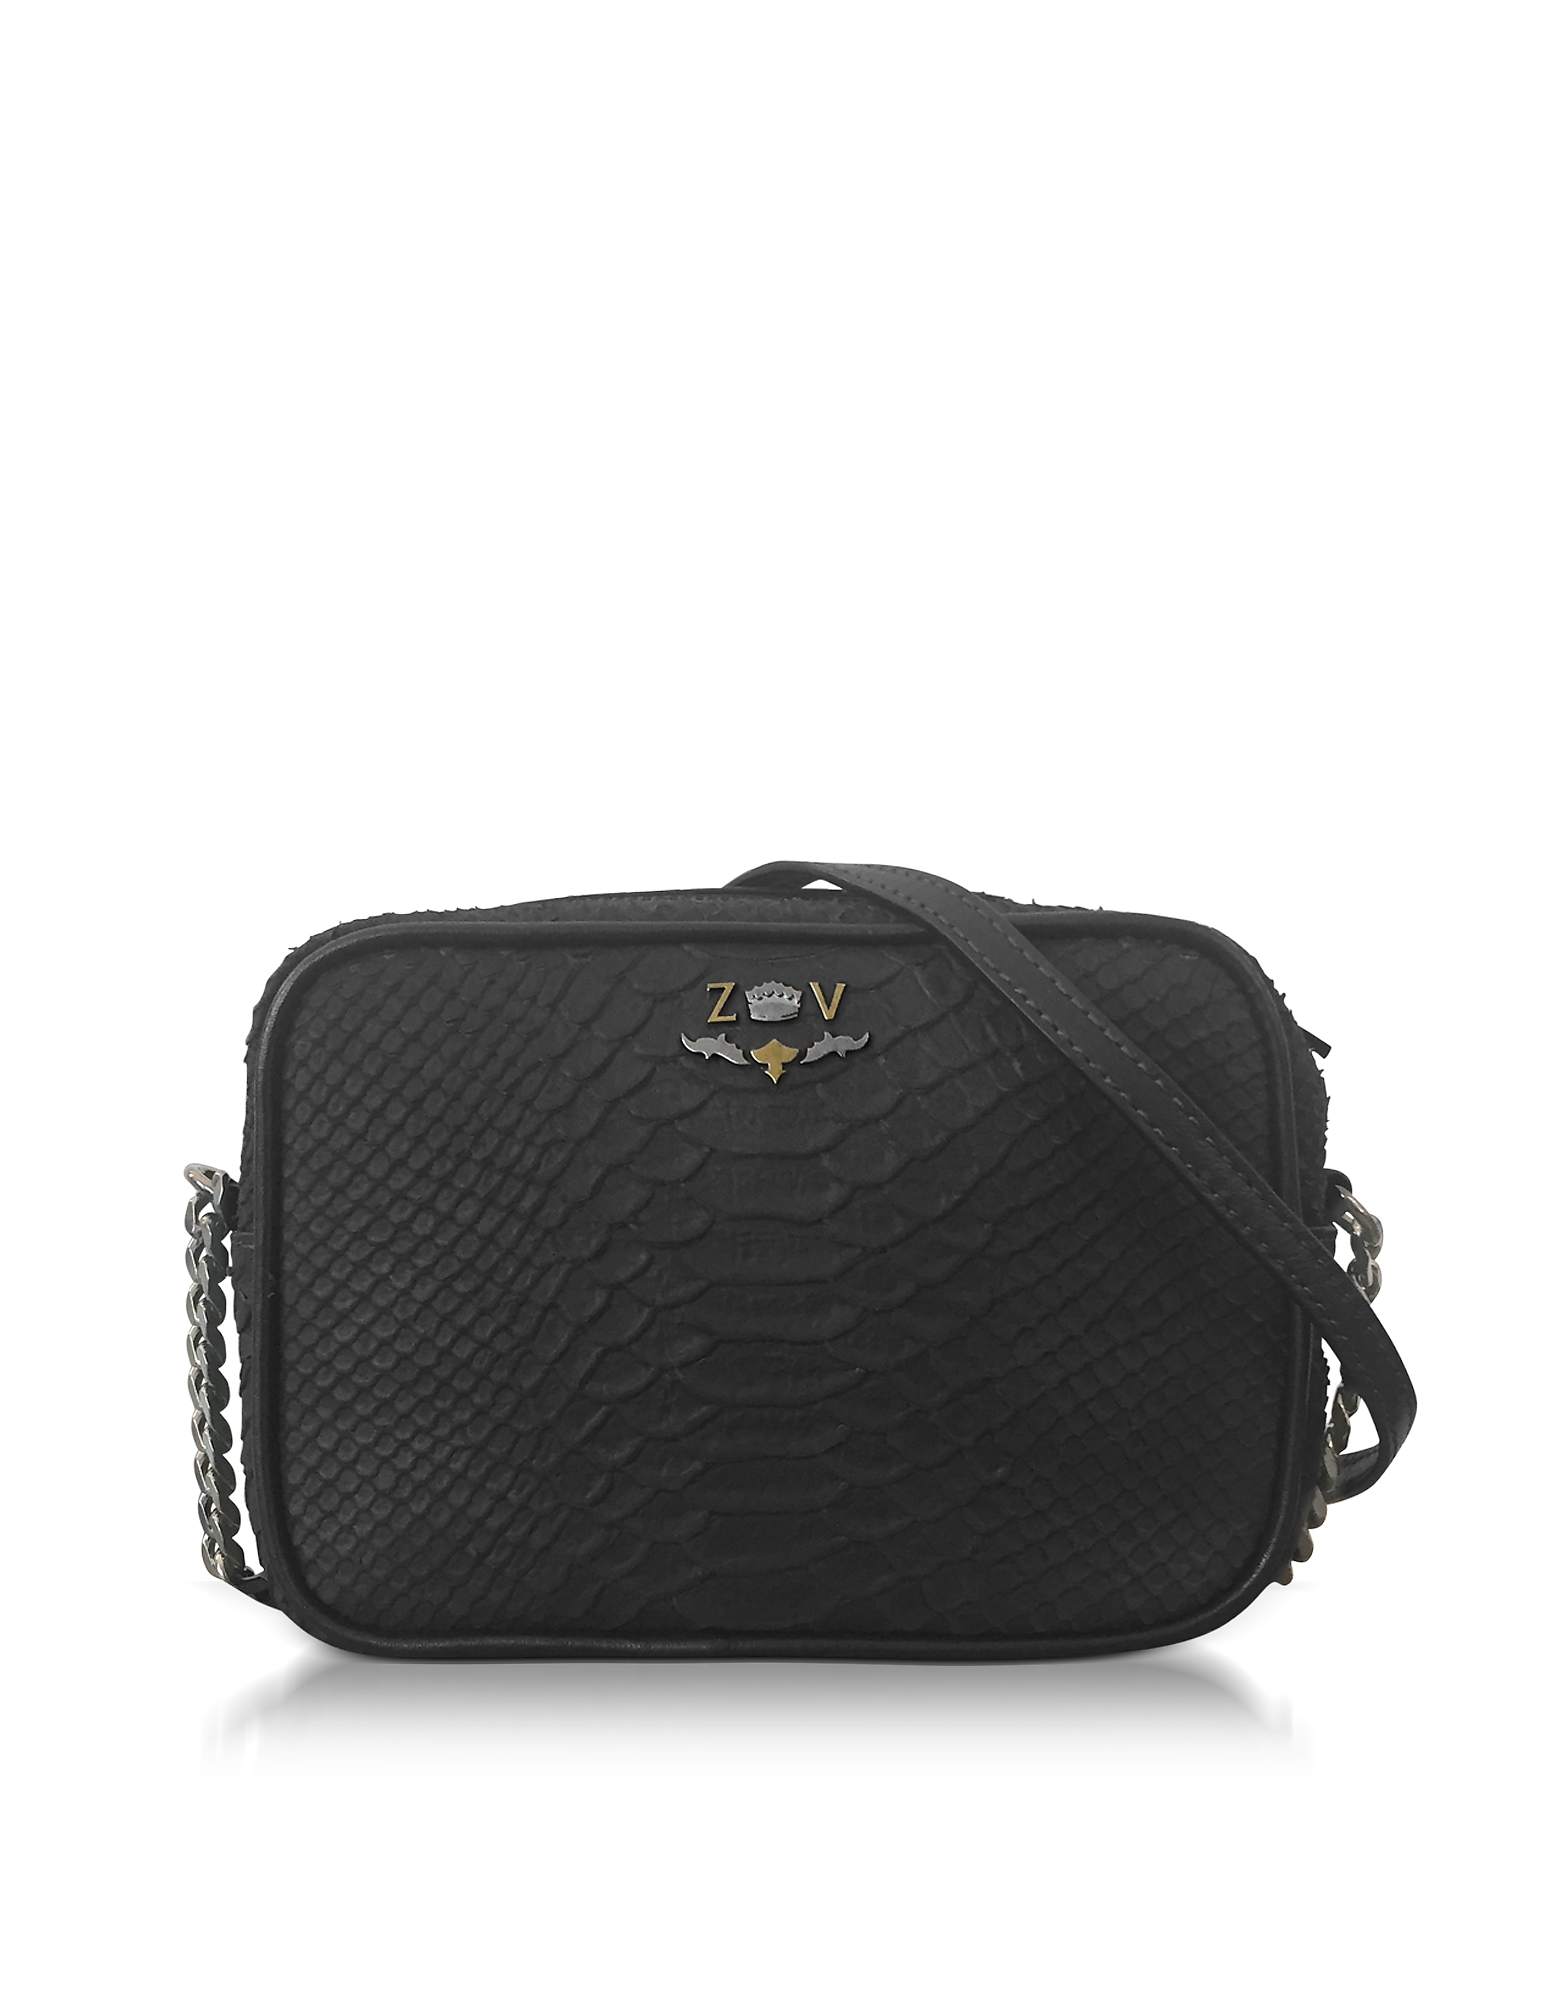 Black Embossed Leather Foldable XS Boxy Savage Crossbody Bag